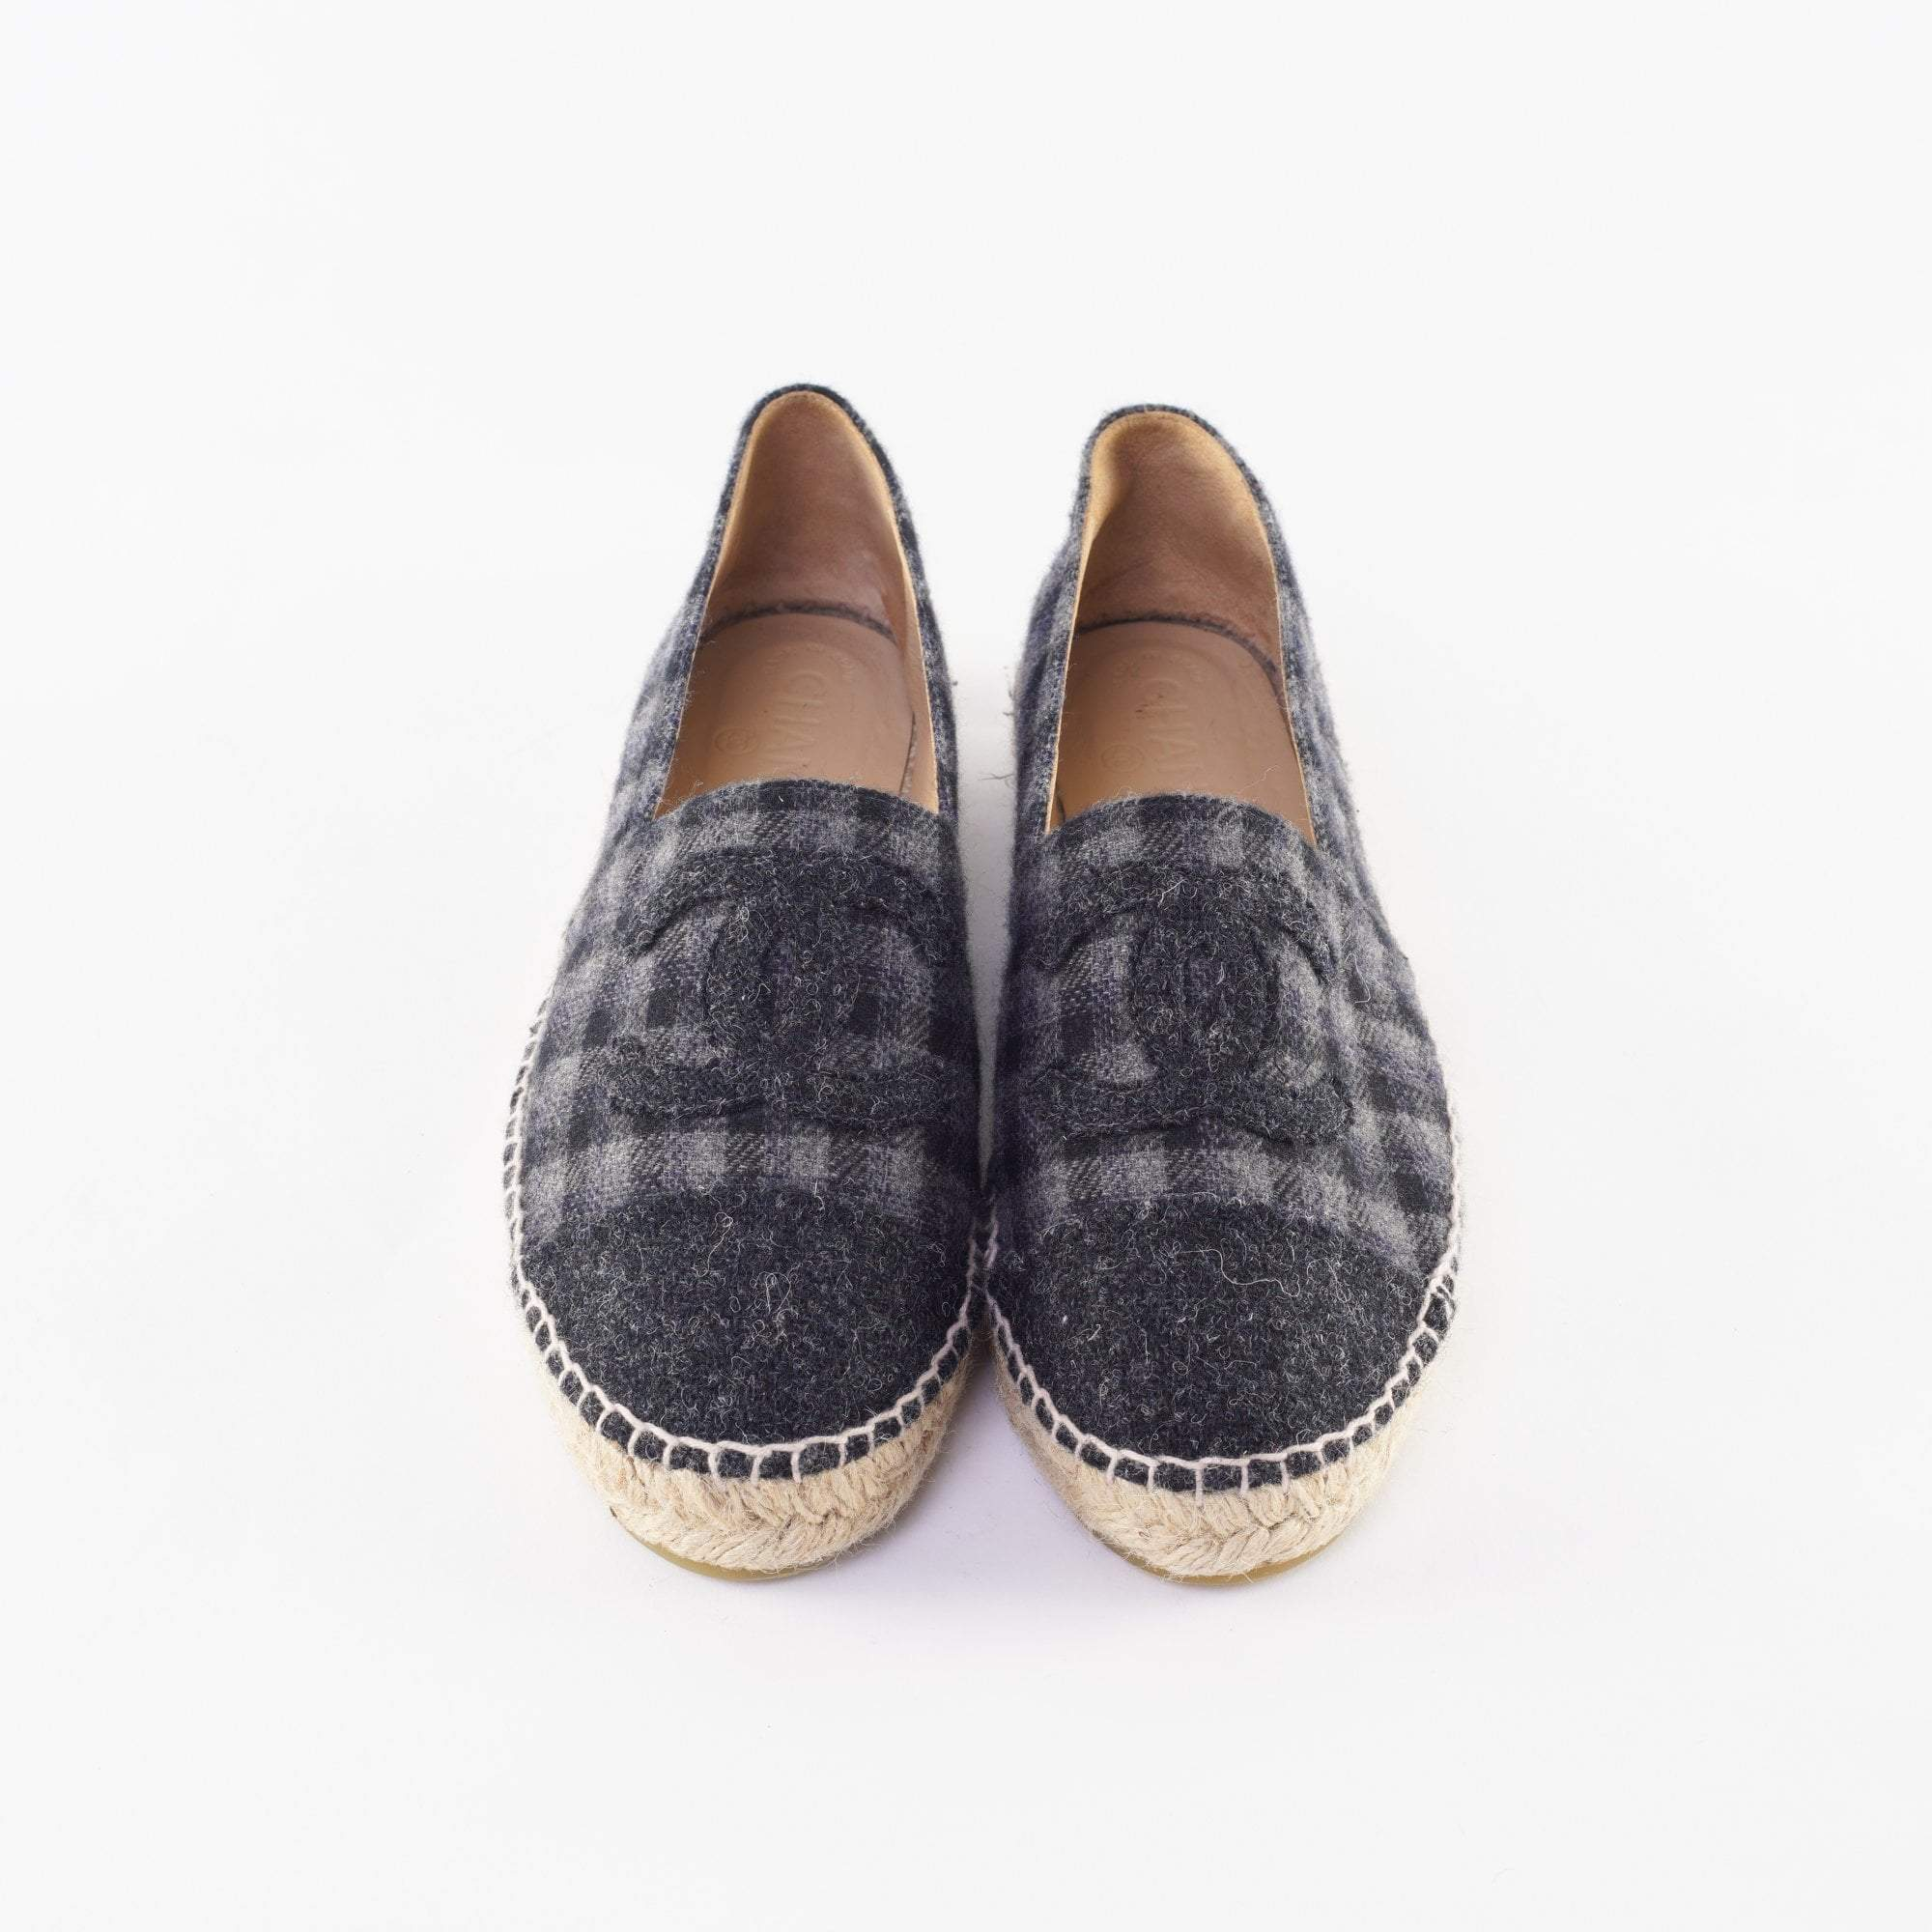 Chanel Black Wool and Tweed CC Espadrilles Size 41